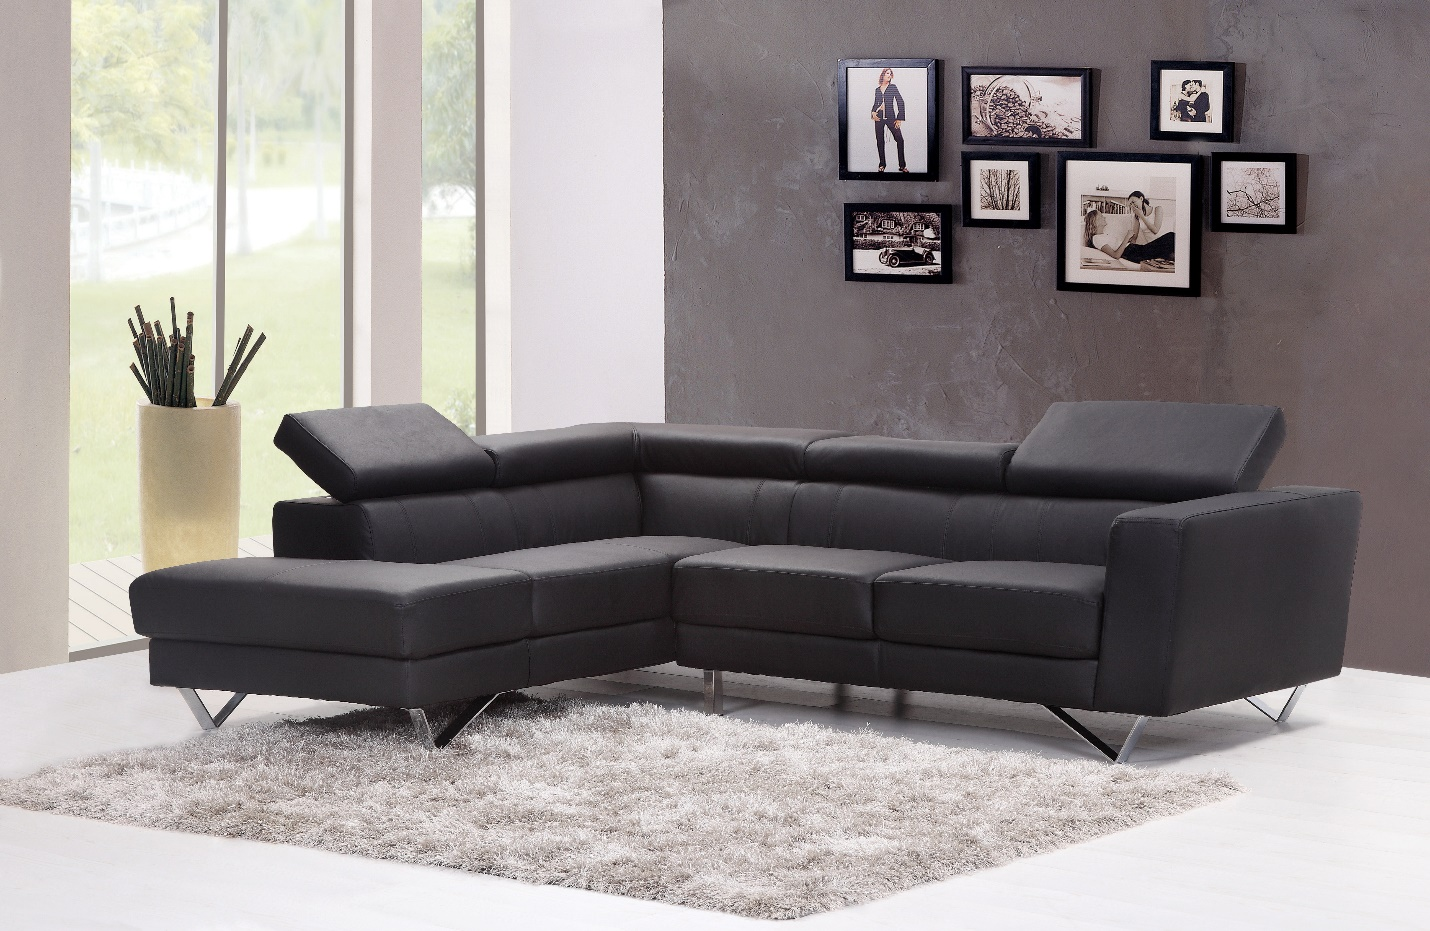 modern living room with modular black couch